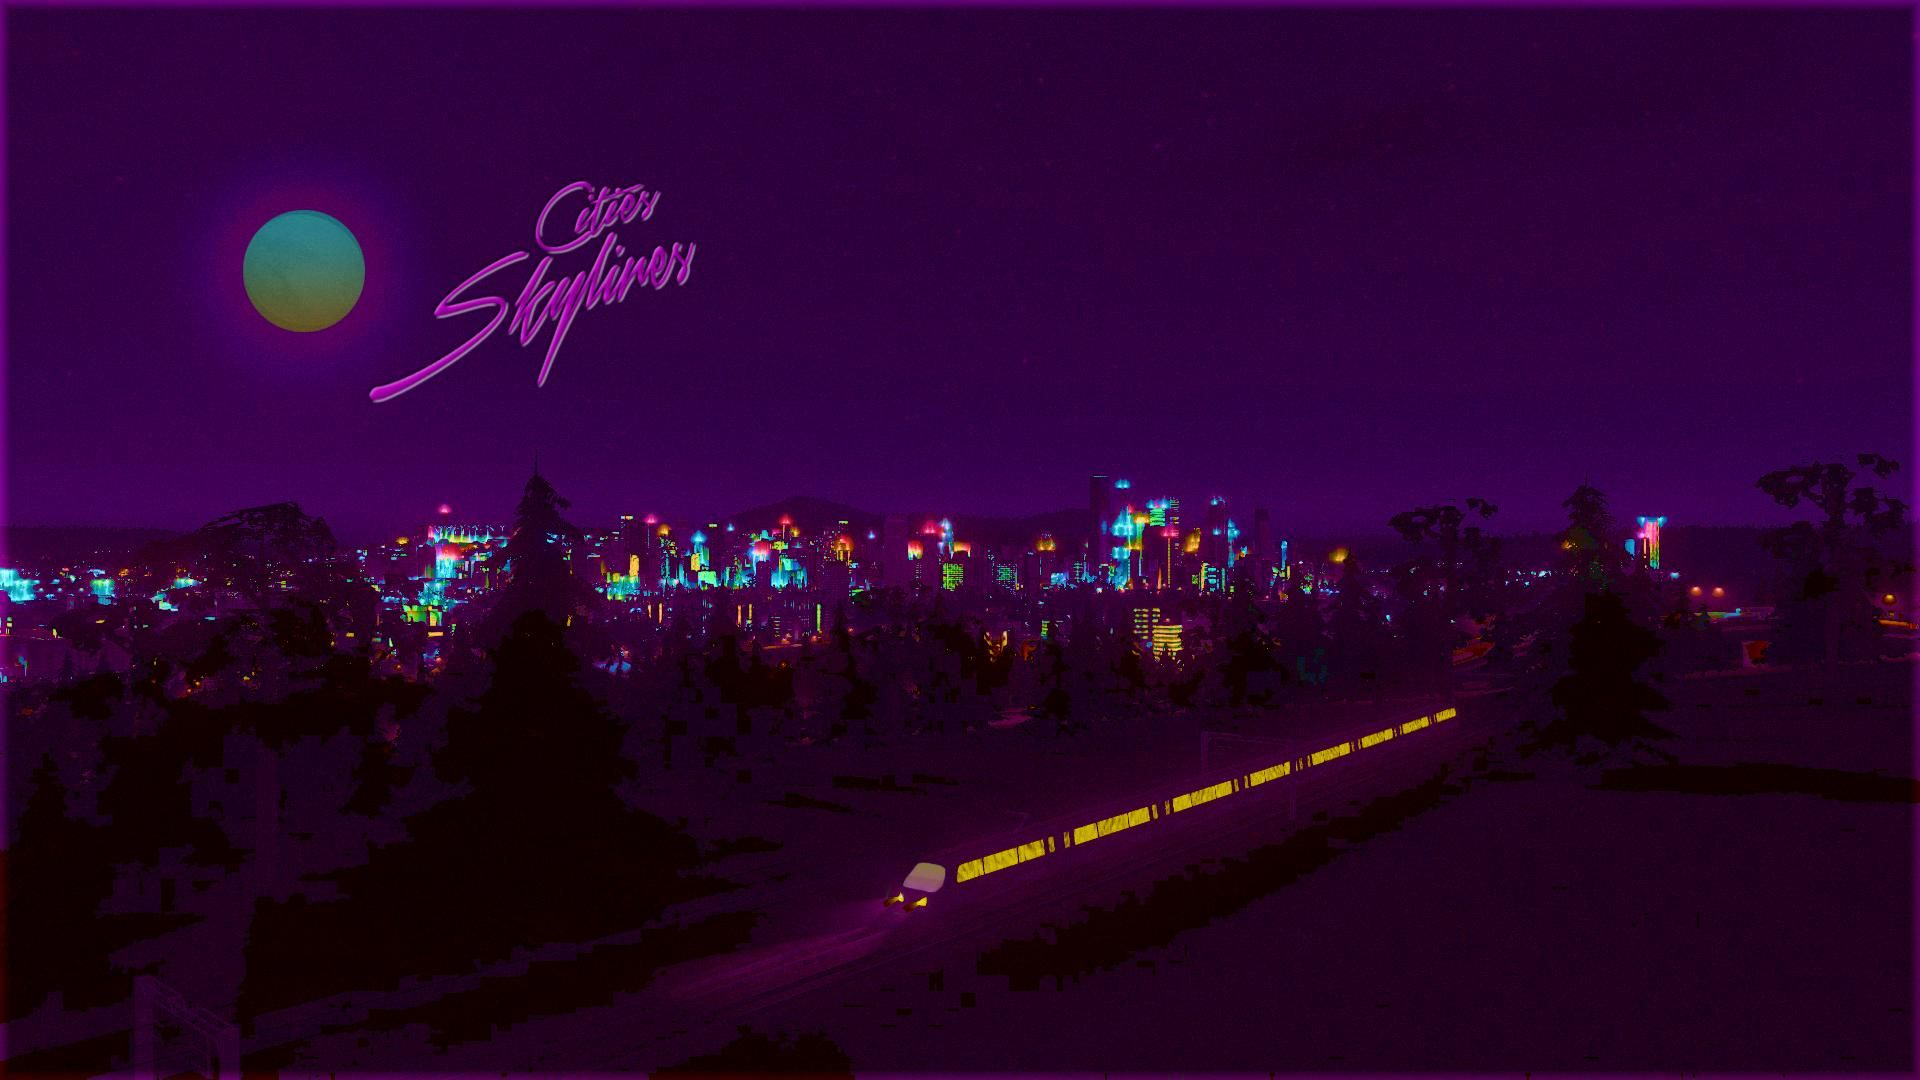 Related image the new retro wave pinterest retro waves